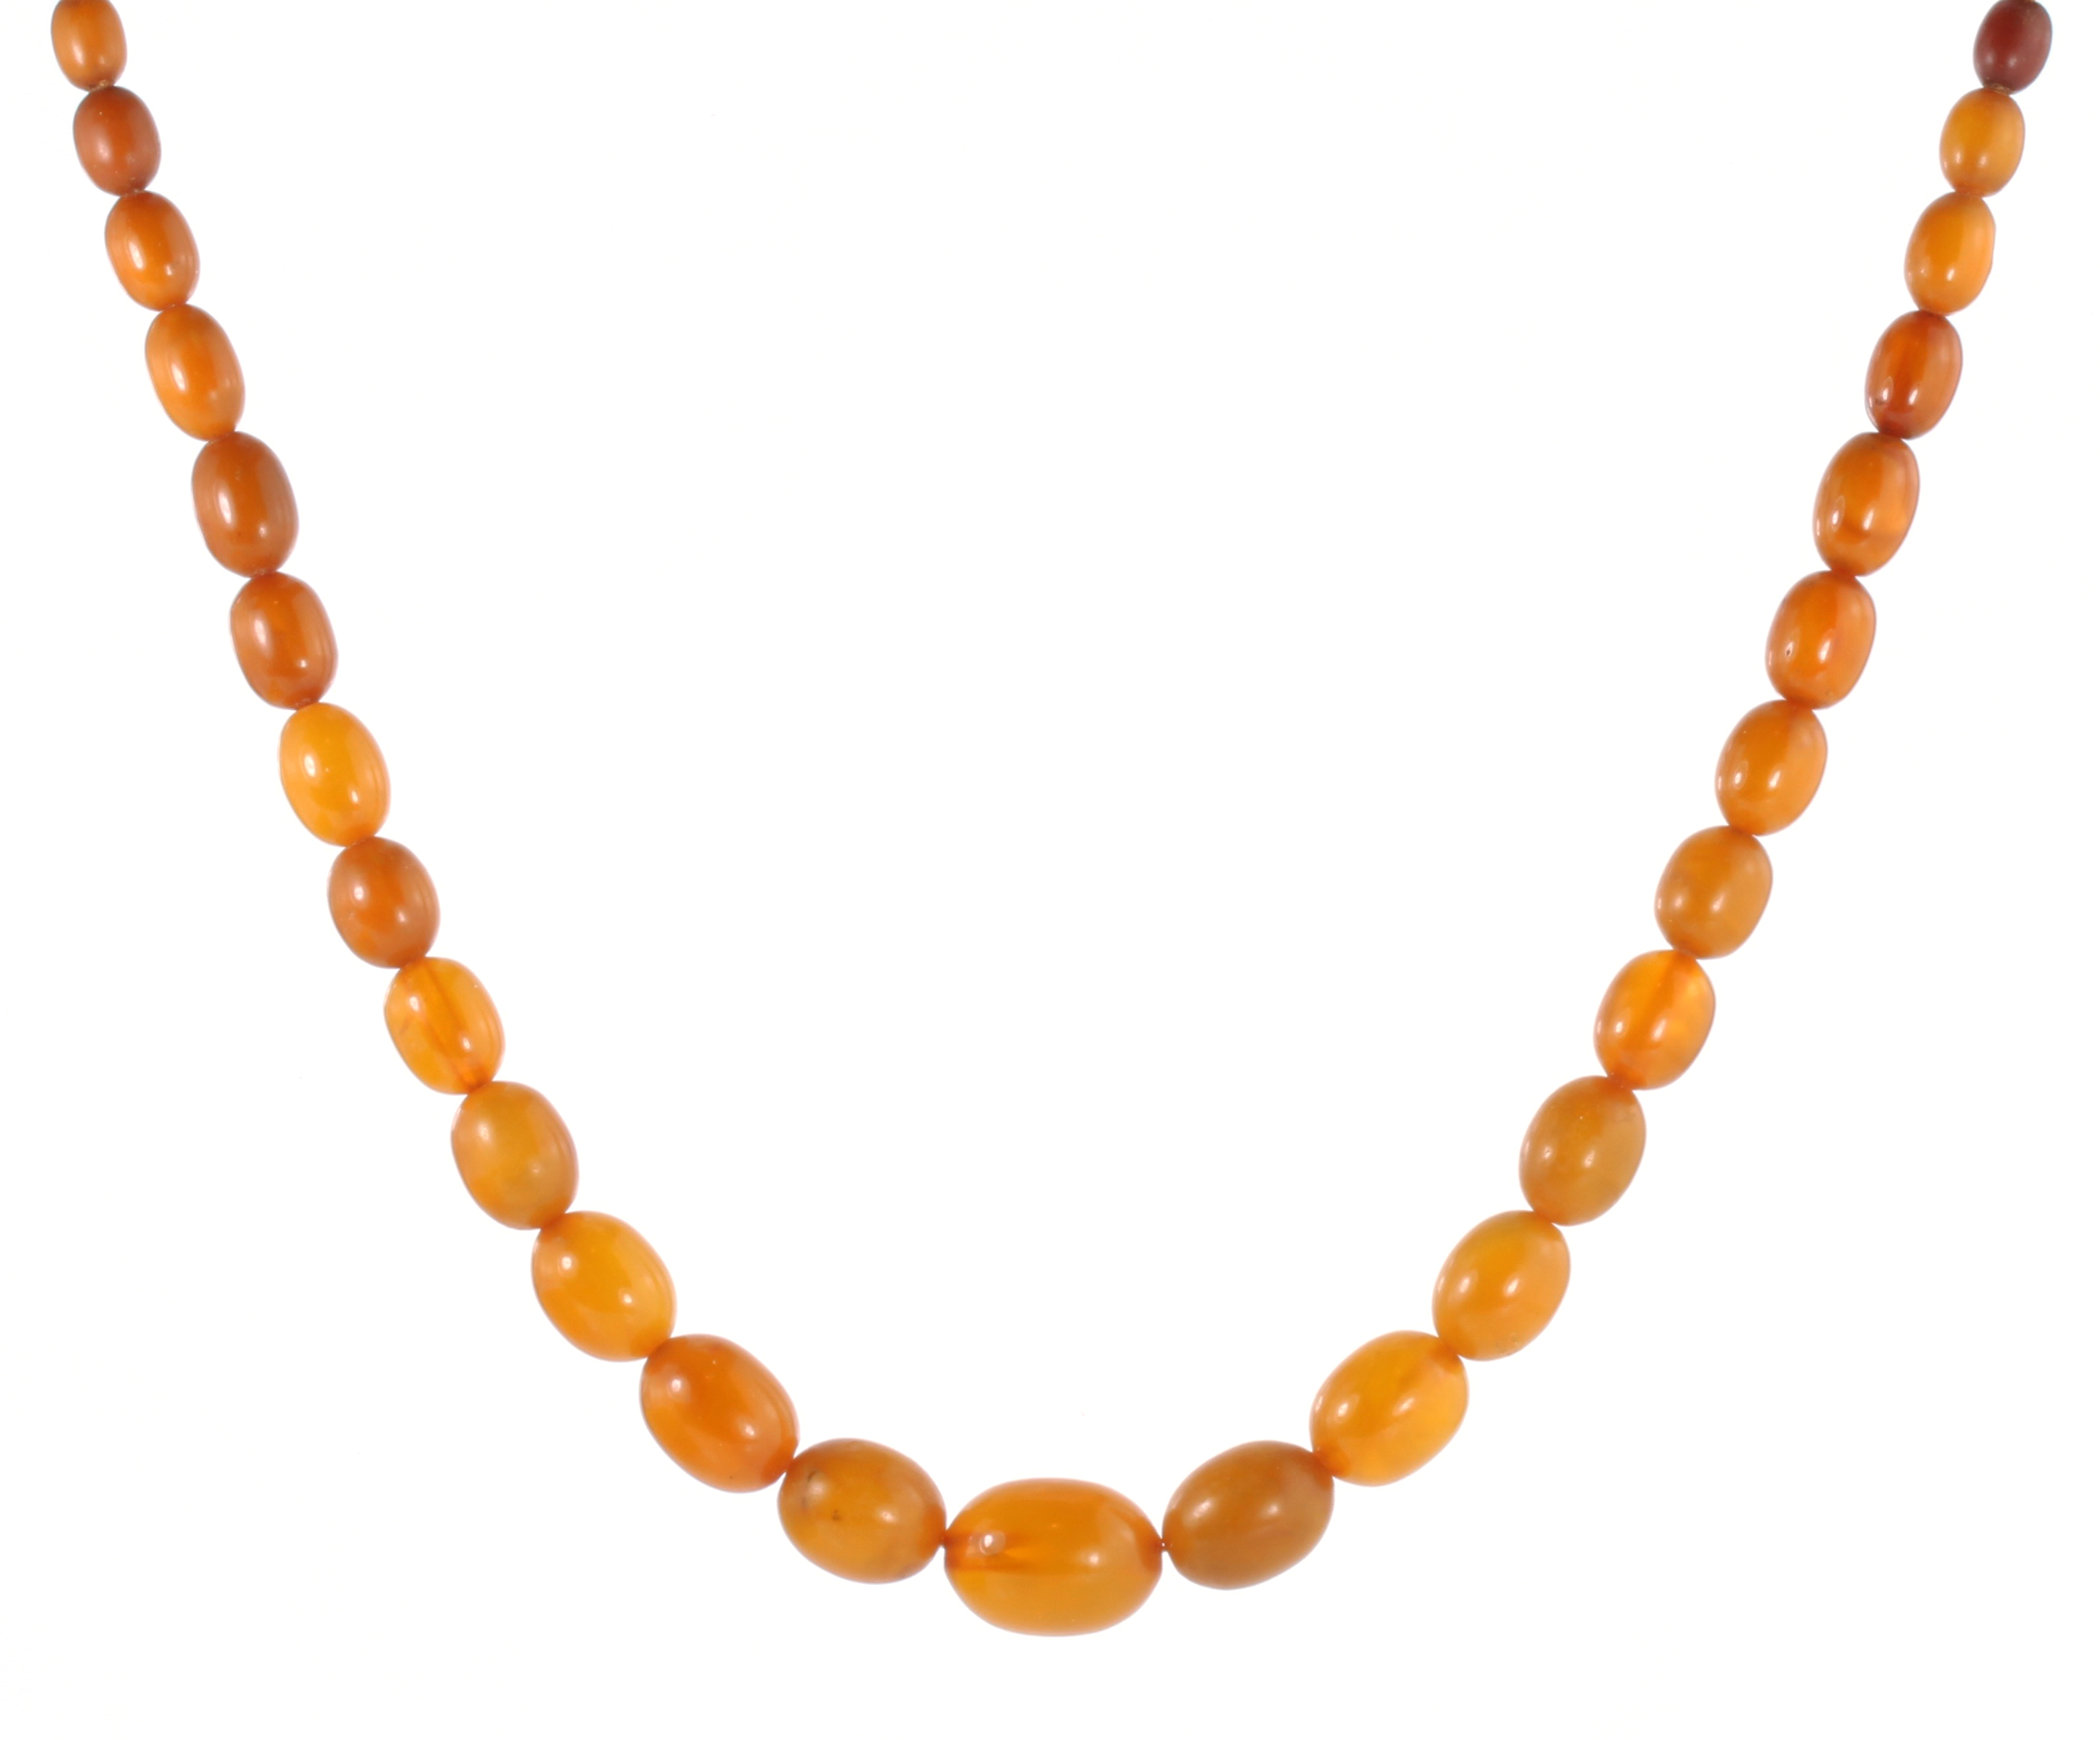 Los 10 - AN ANTIQUE NATURAL AMBER BEAD NECKLACE comprising a single row of seventy-three graduated polished